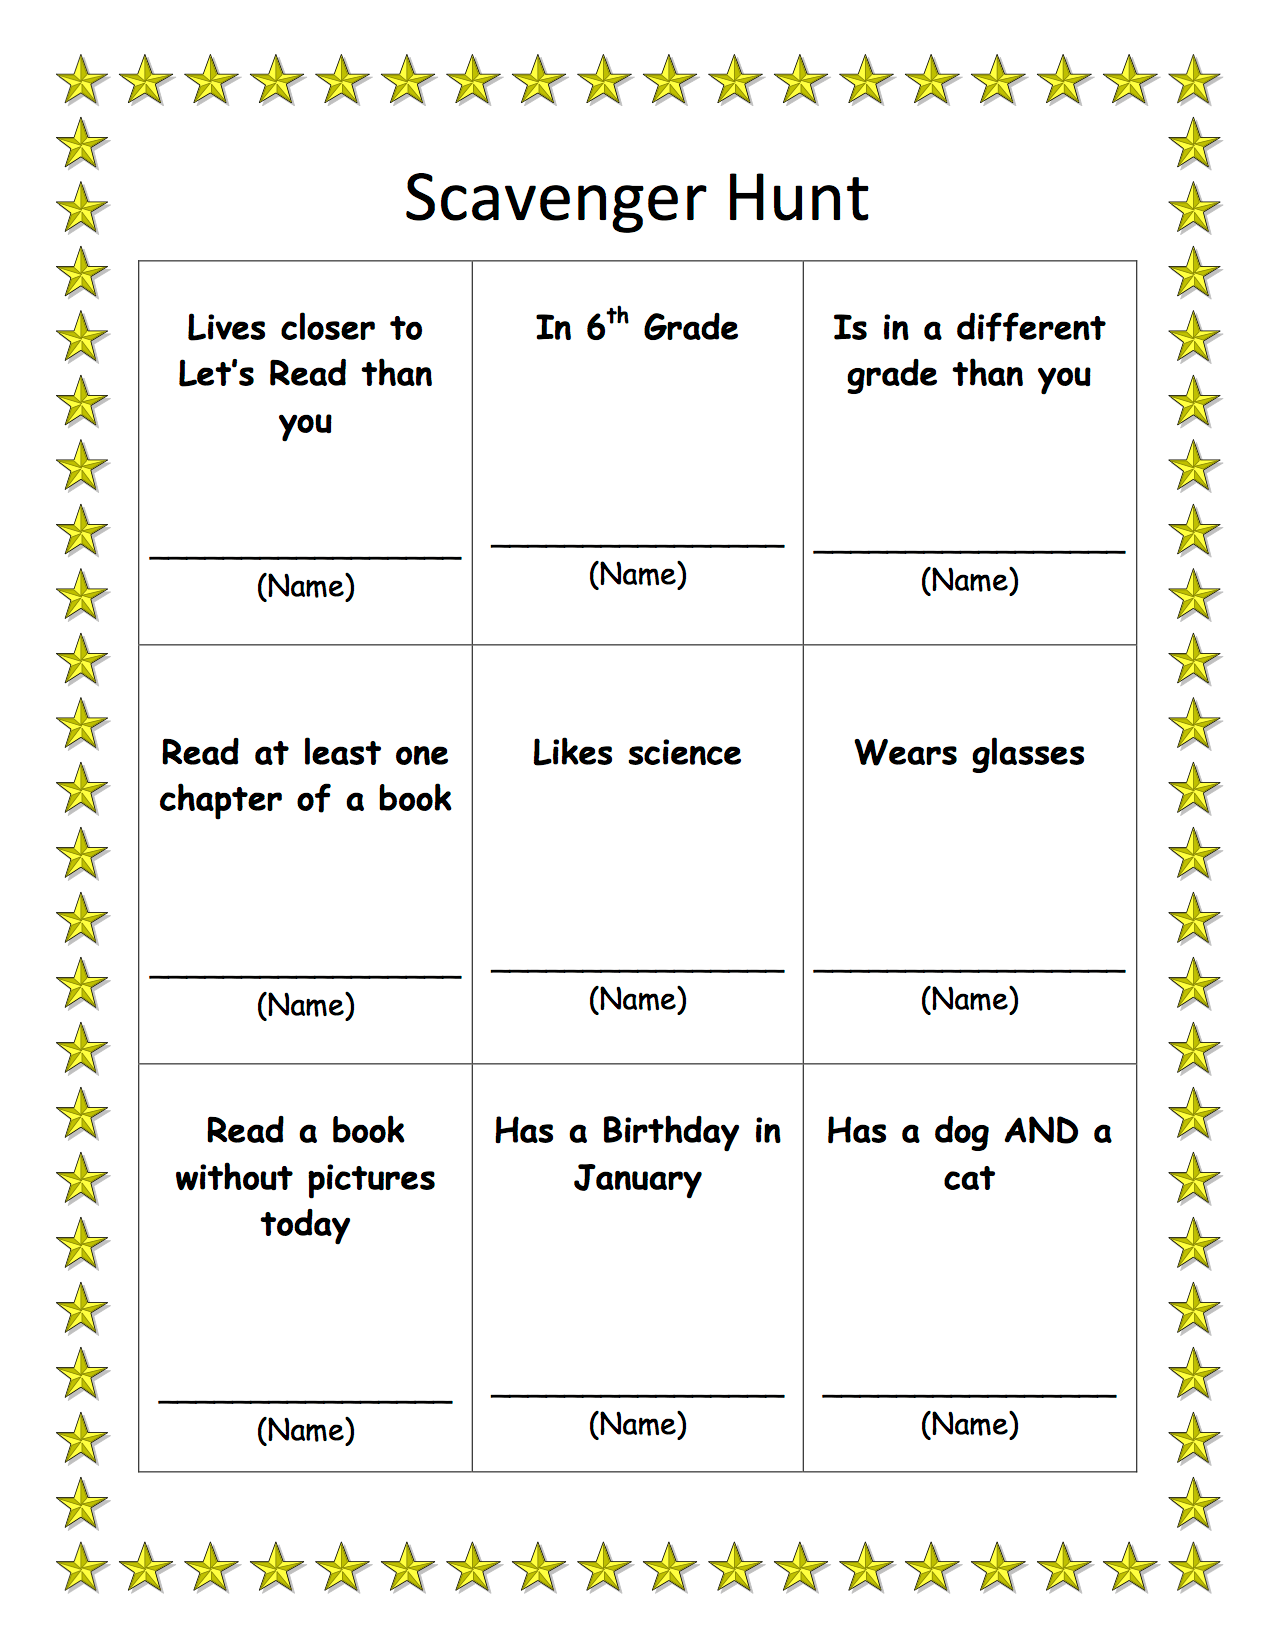 Fun Scavenger Hunt List Indoor